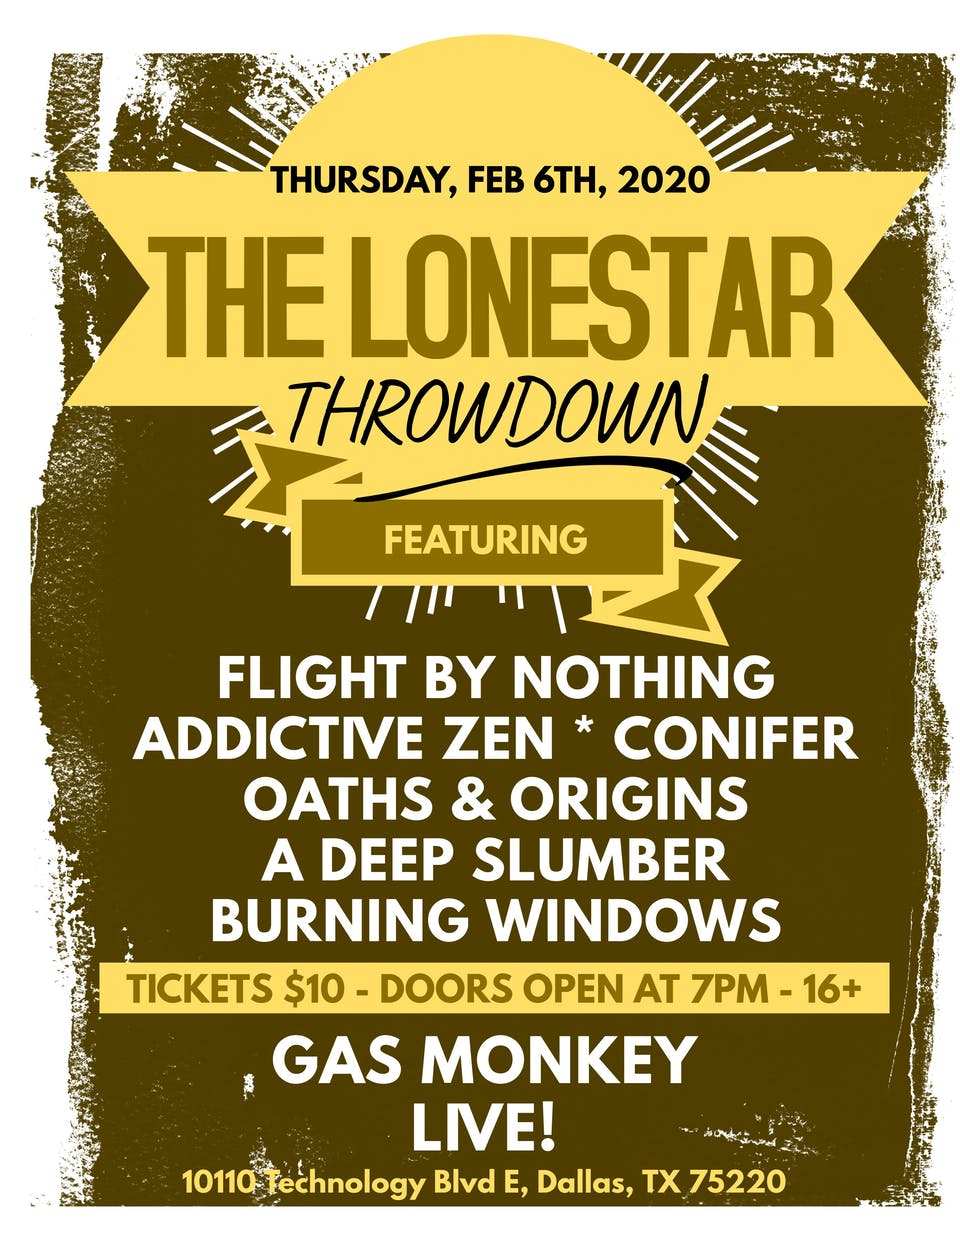 THE LONESTAR THROWDOWN